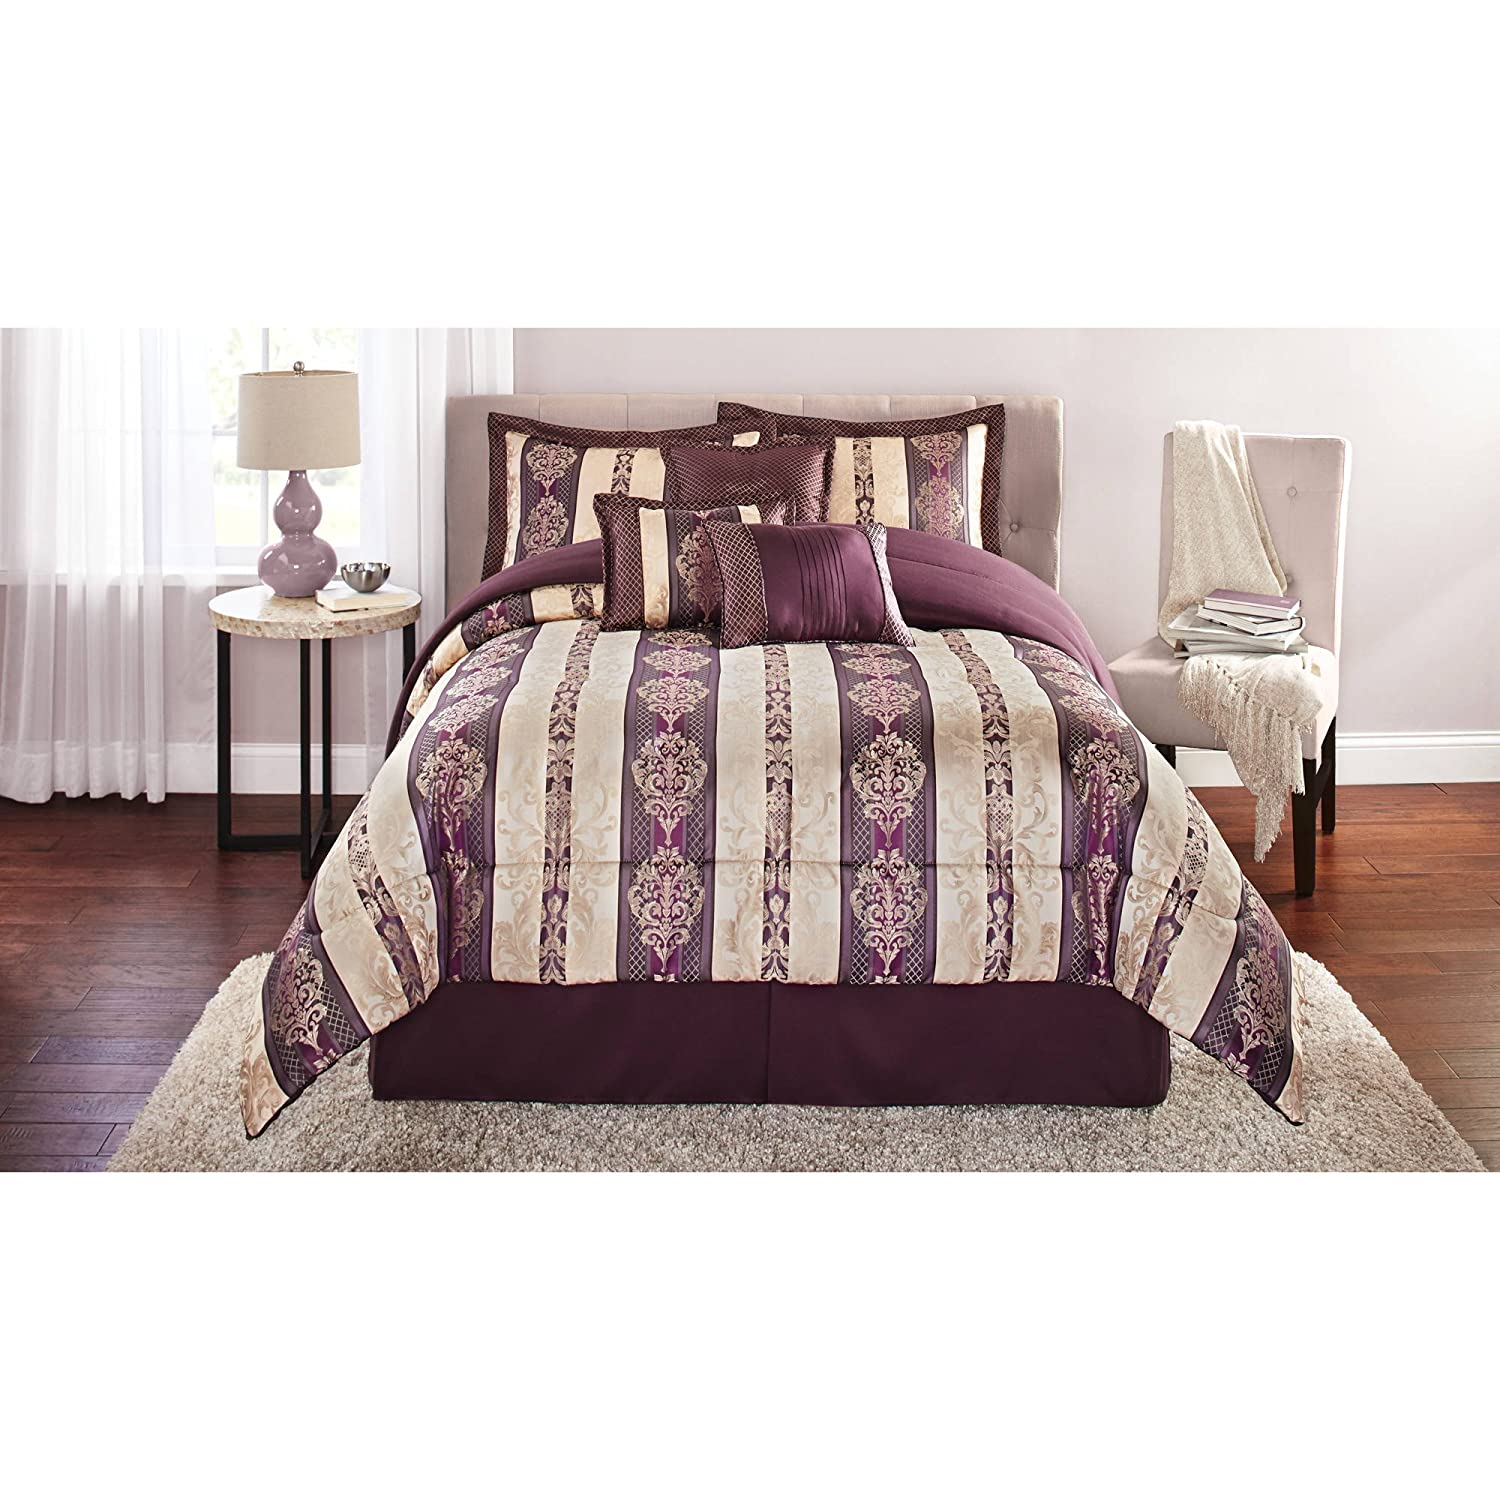 Mainstays Adelaide 7-Piece Damask Embroidered Bedding Comforter Set, Full/Queen